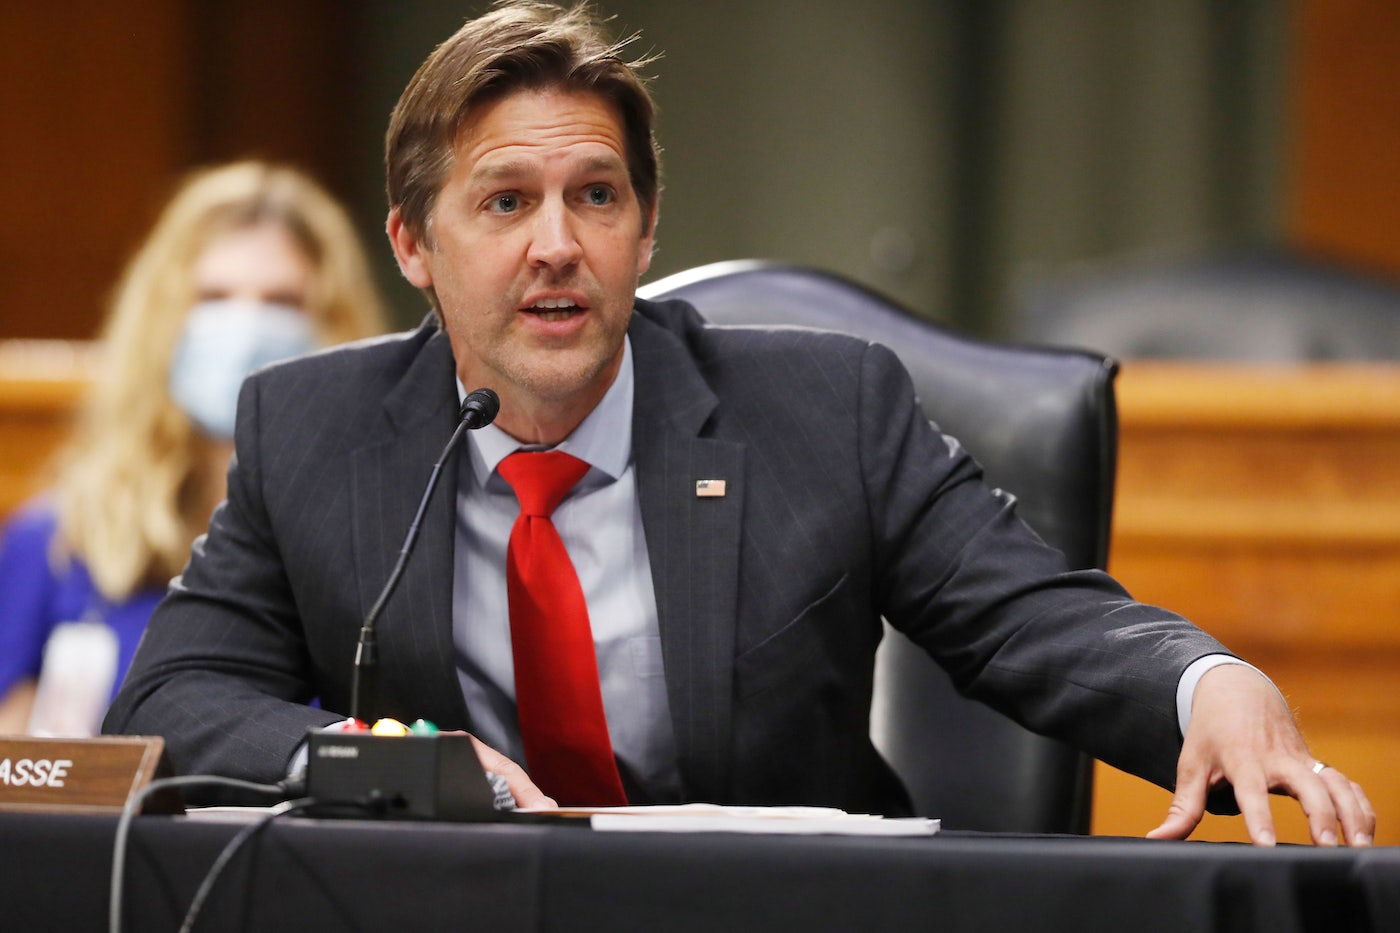 Nebraska Senator Ben Sasse speaks during a Senate Intelligence Committee hearing.